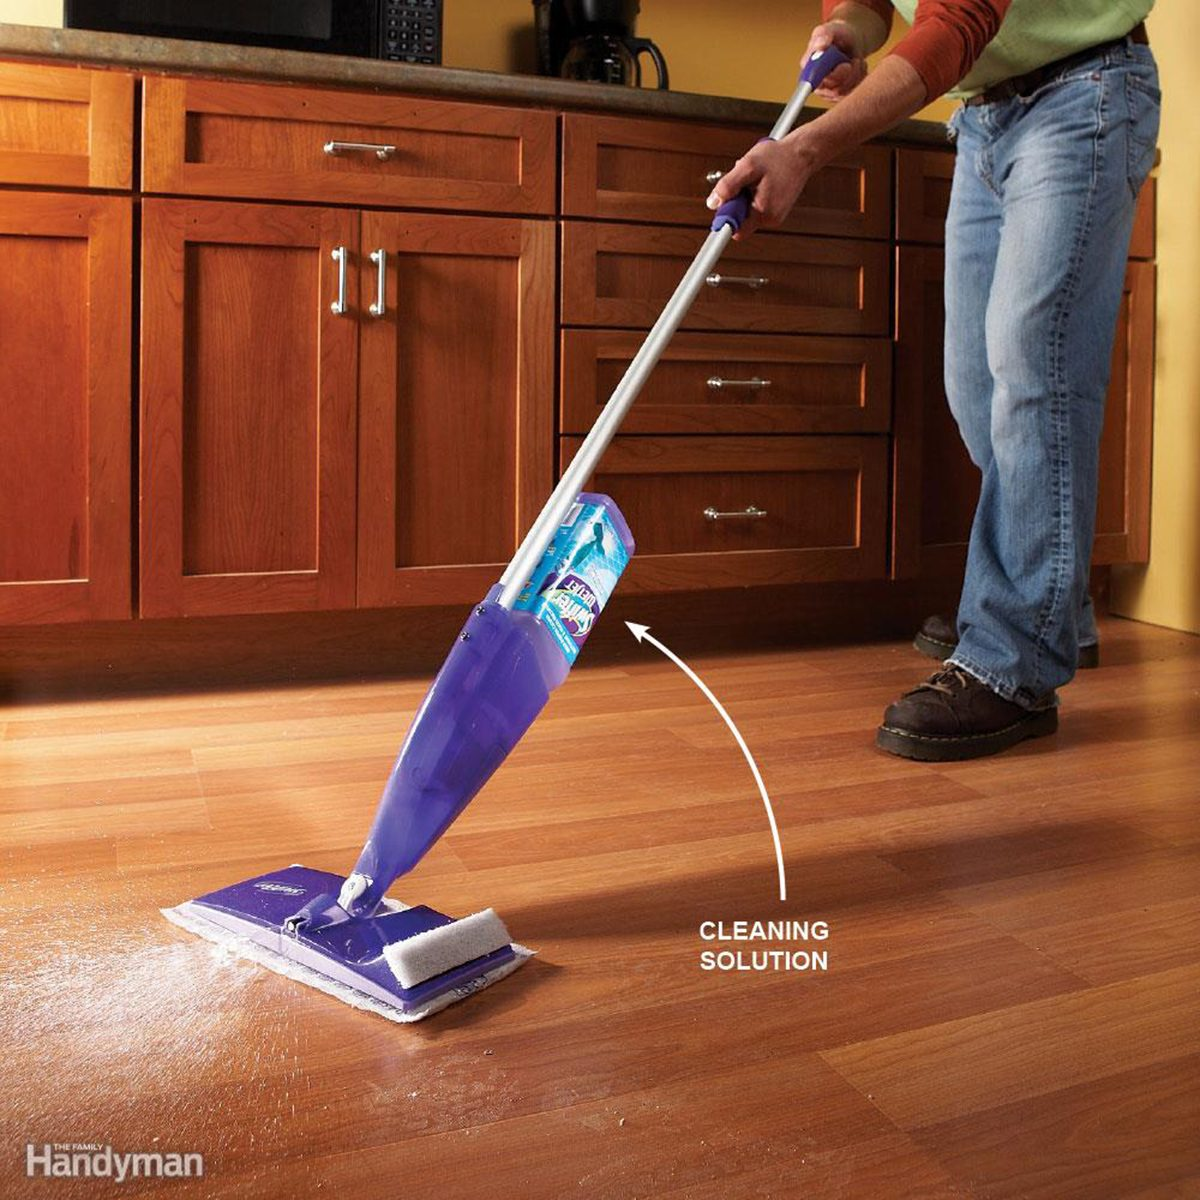 Cleaning hard floors